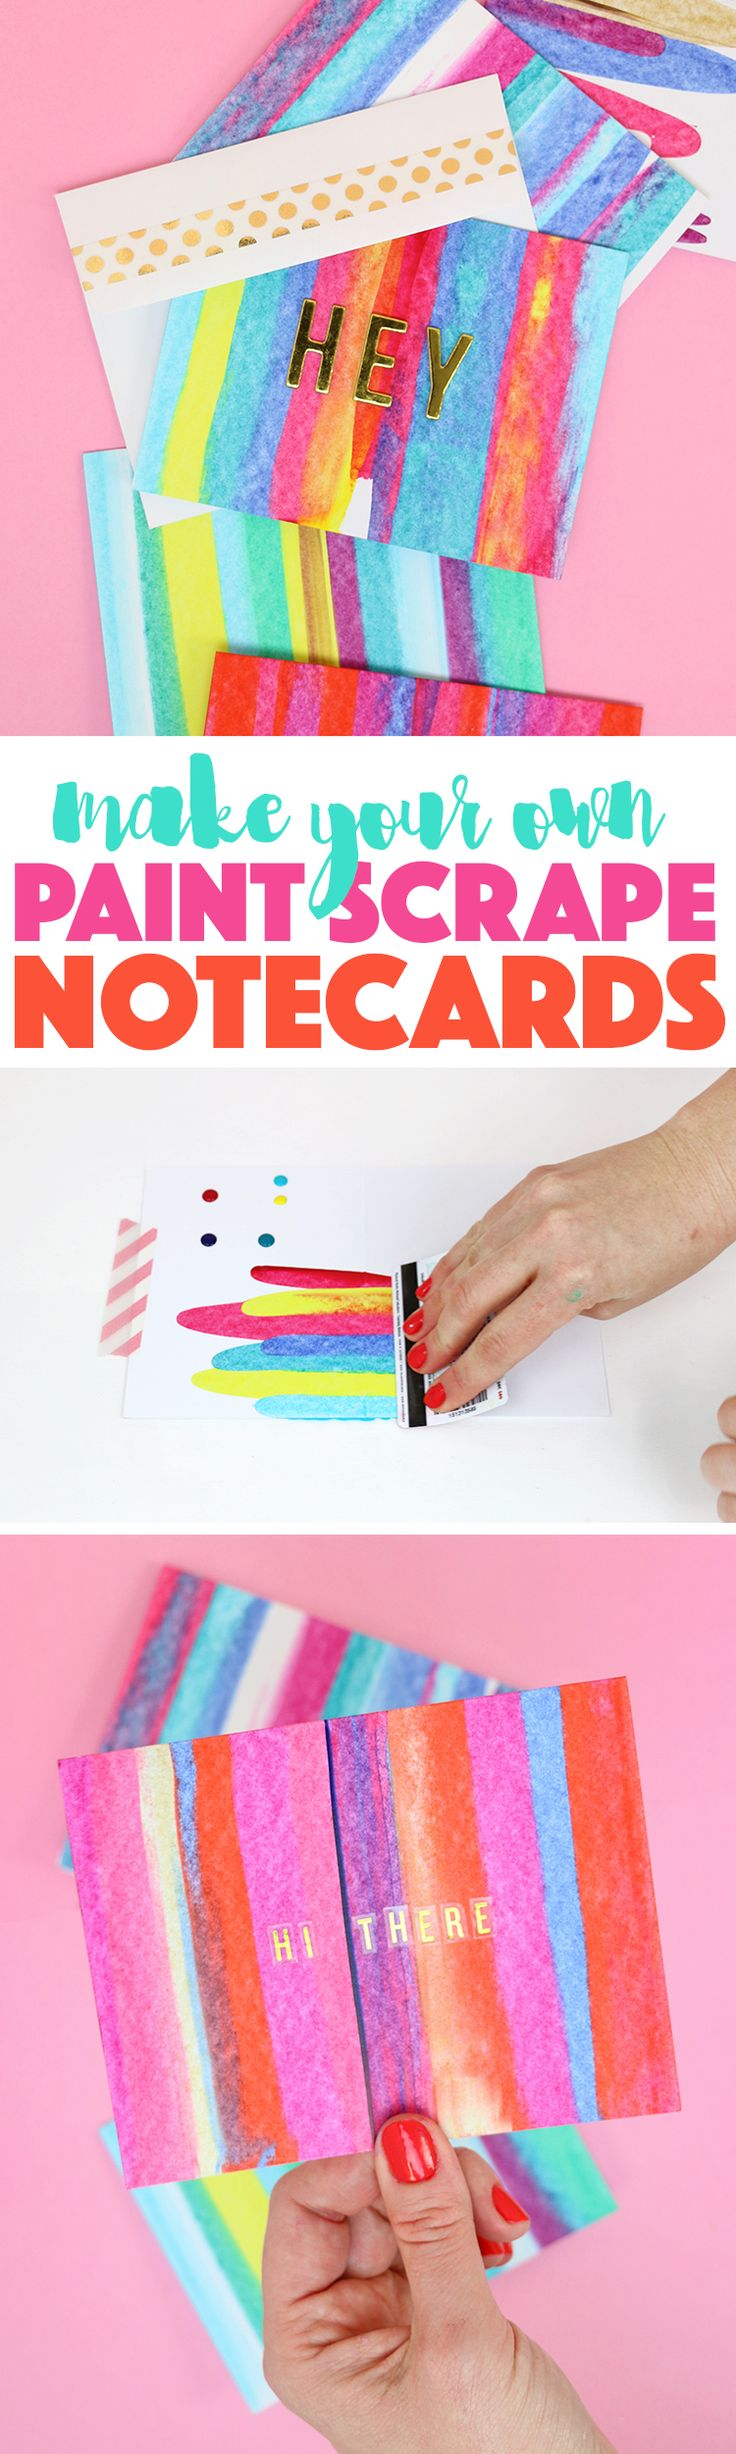 Paint Scrape Notecards – DIY Art Project Idea